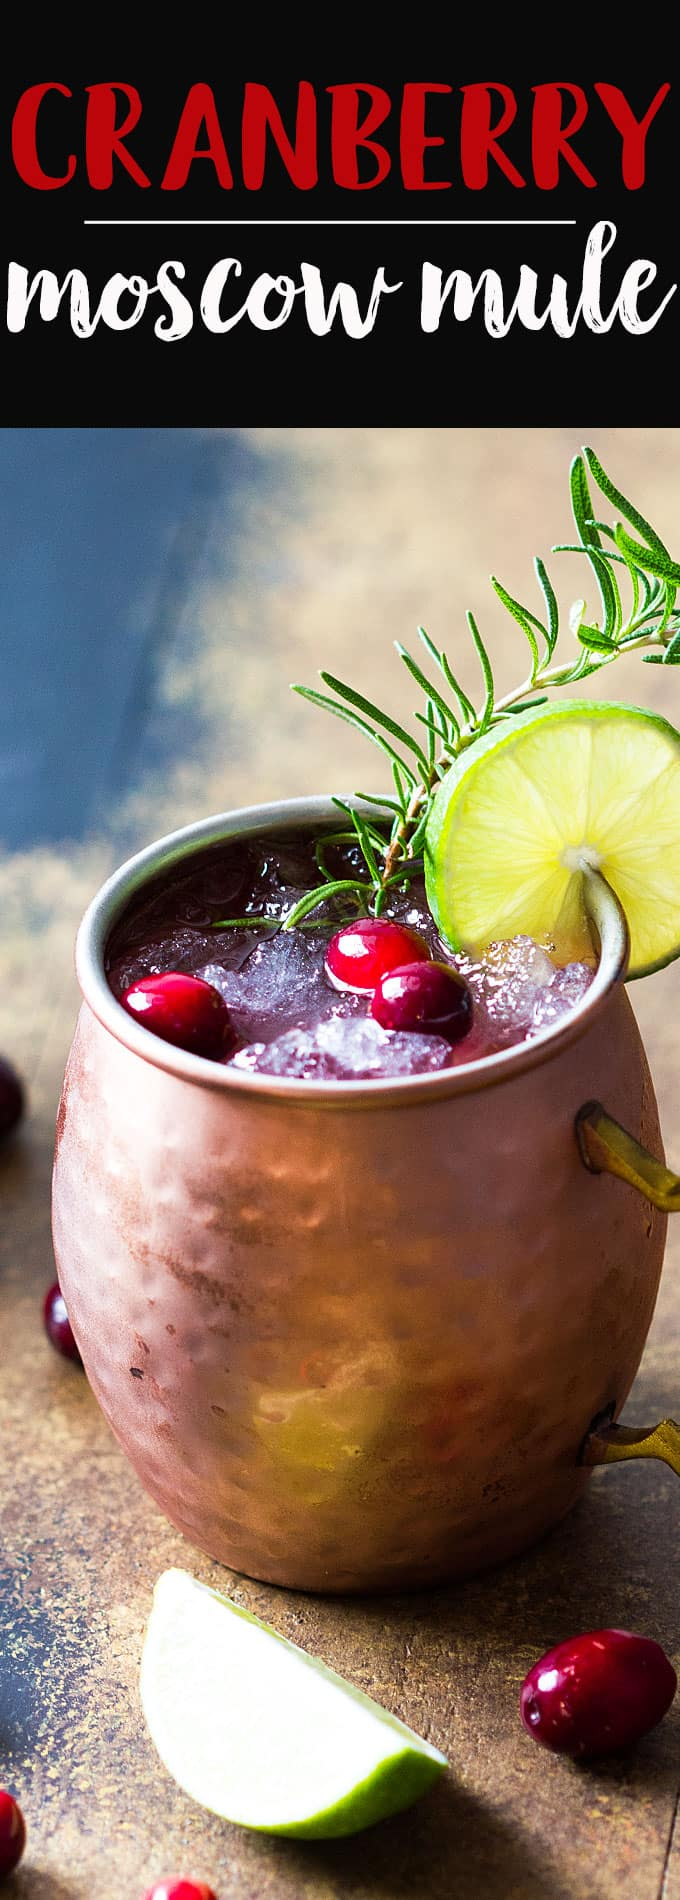 Cranberry Moscow Mule - A festive cocktail for holiday gatherings!